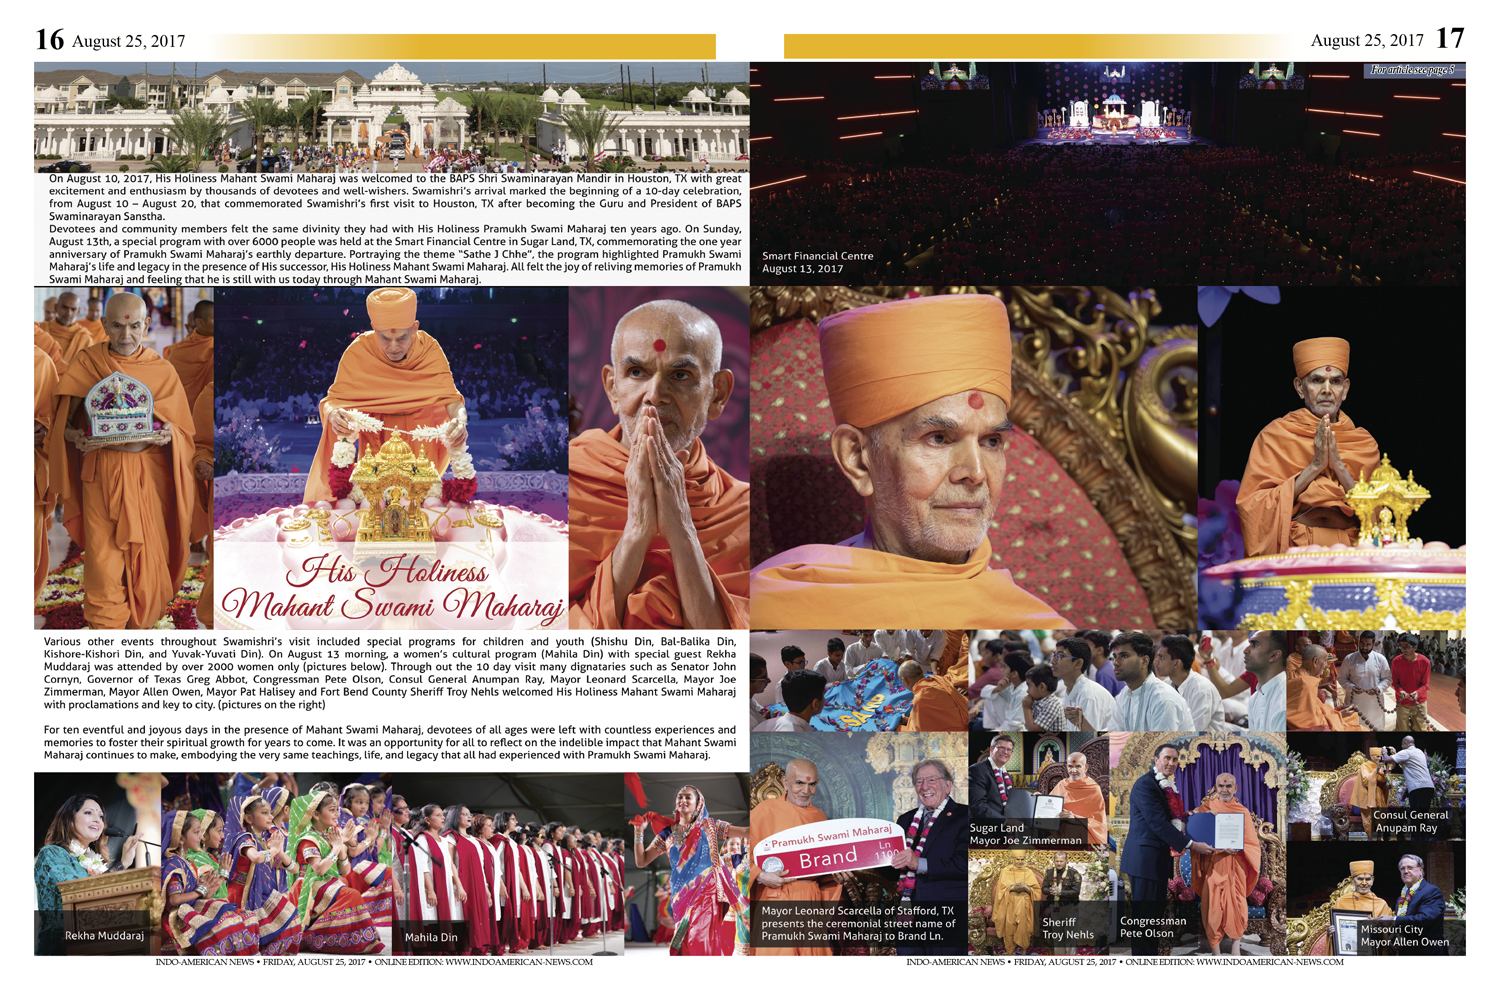 Spirituality Inspiration And Joy With His Holiness Mahant Swami